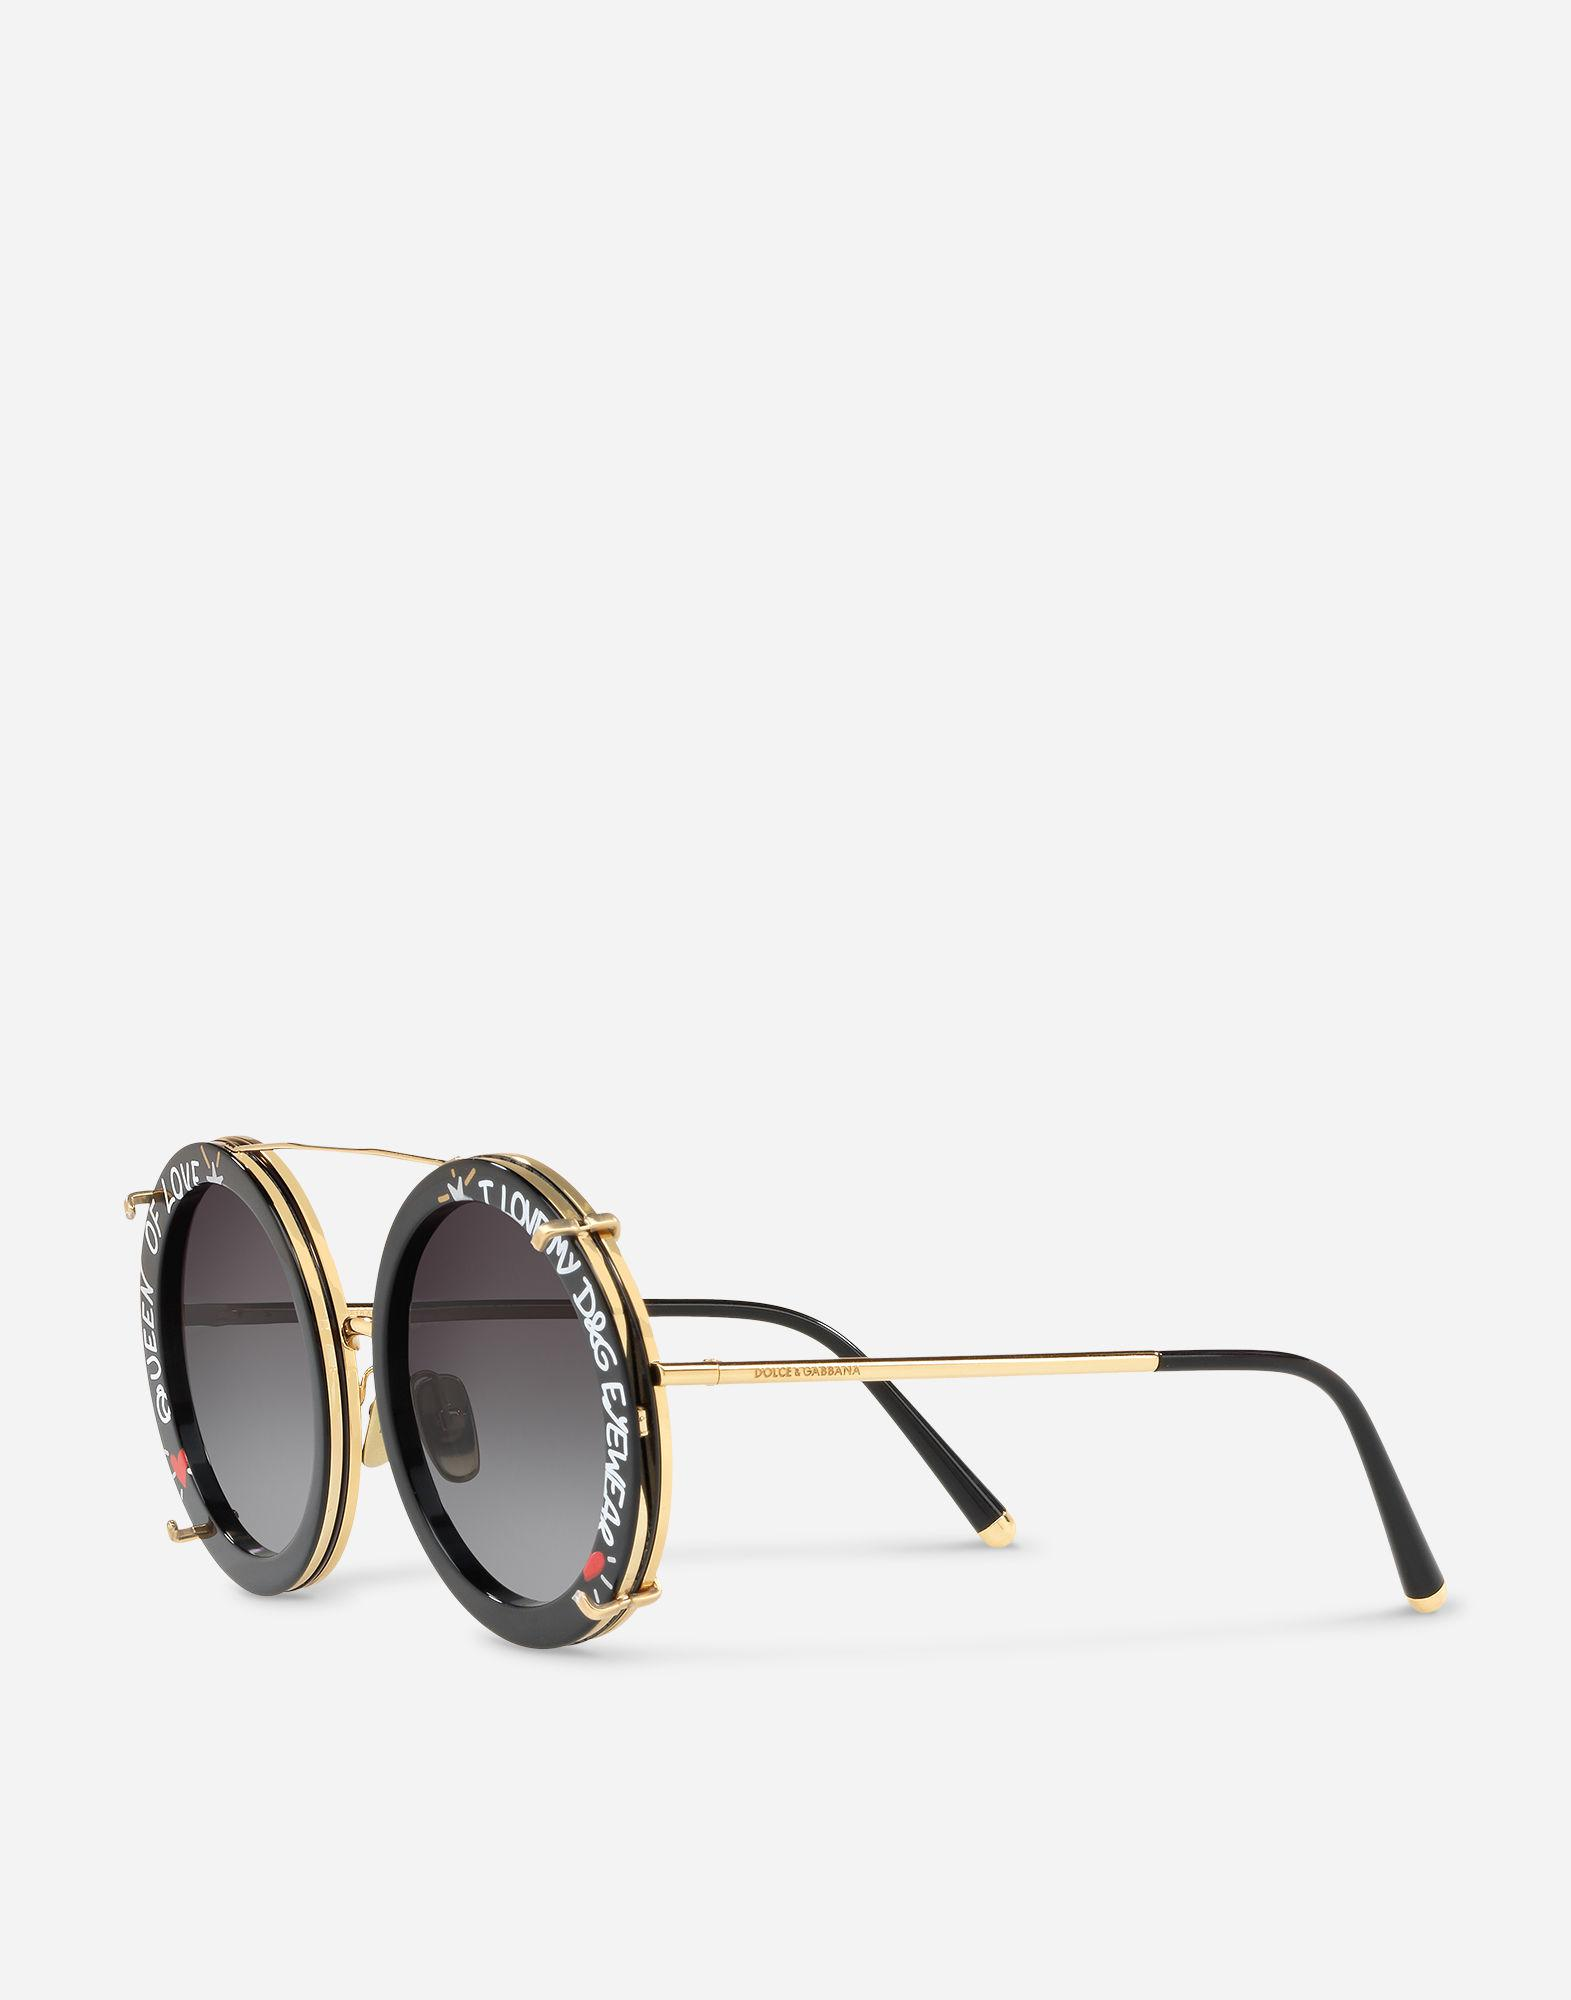 e9495483416 Lyst - Dolce   Gabbana Round Clip-on Sunglasses In Gold Metal With Graffiti  Print in Metallic